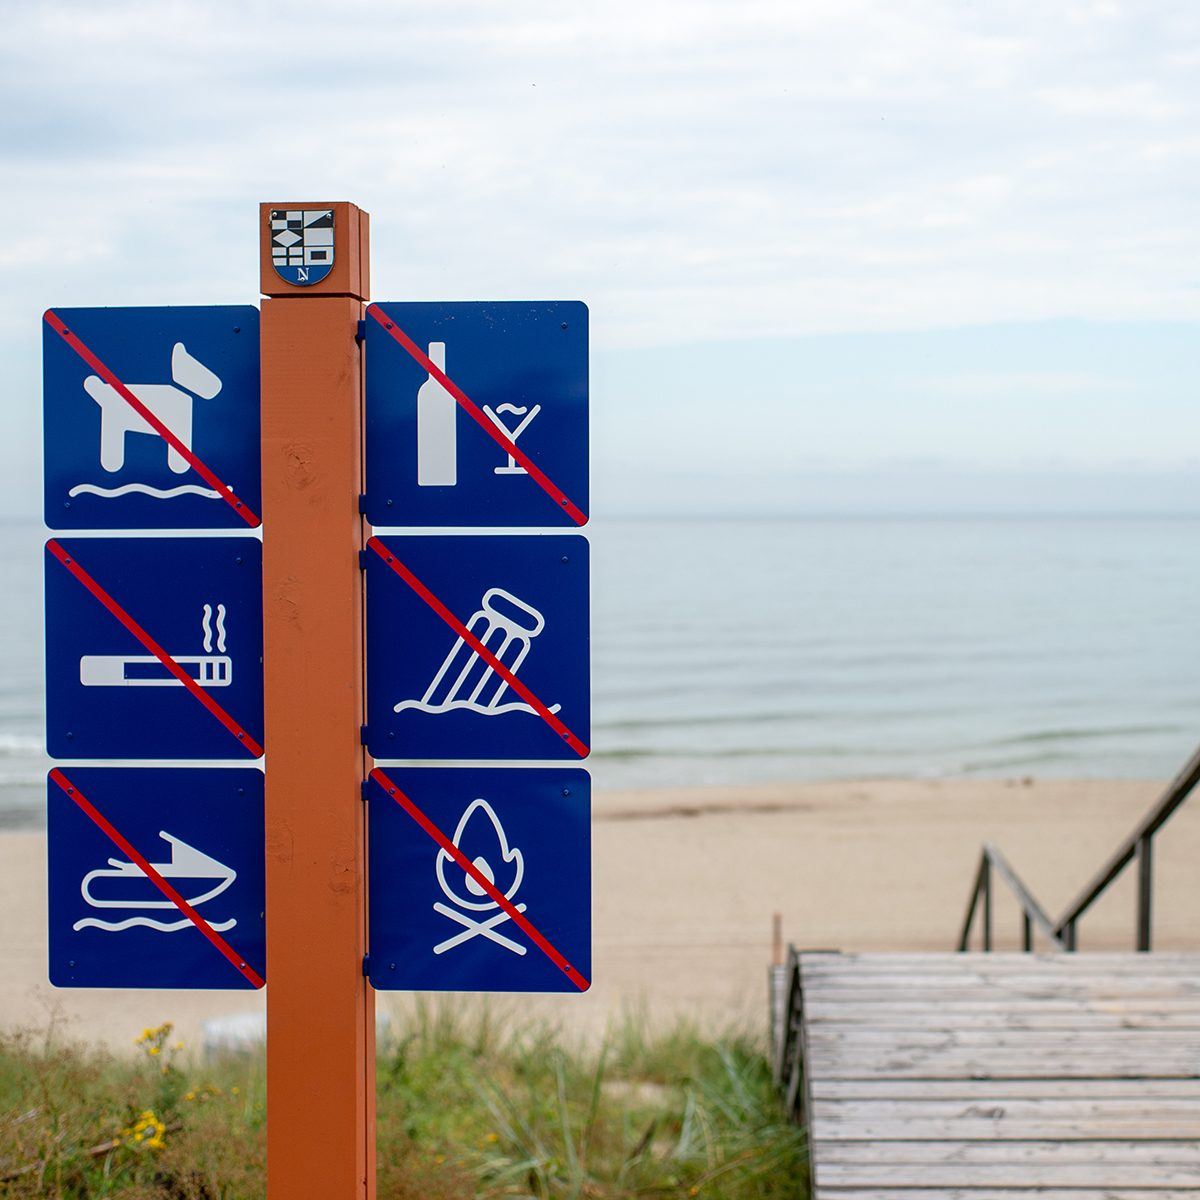 On the beach it is forbidden: walking Pets, drinking alcohol, Smoking, garbage, boating,bonfires. No dog. Please don't litter beach.